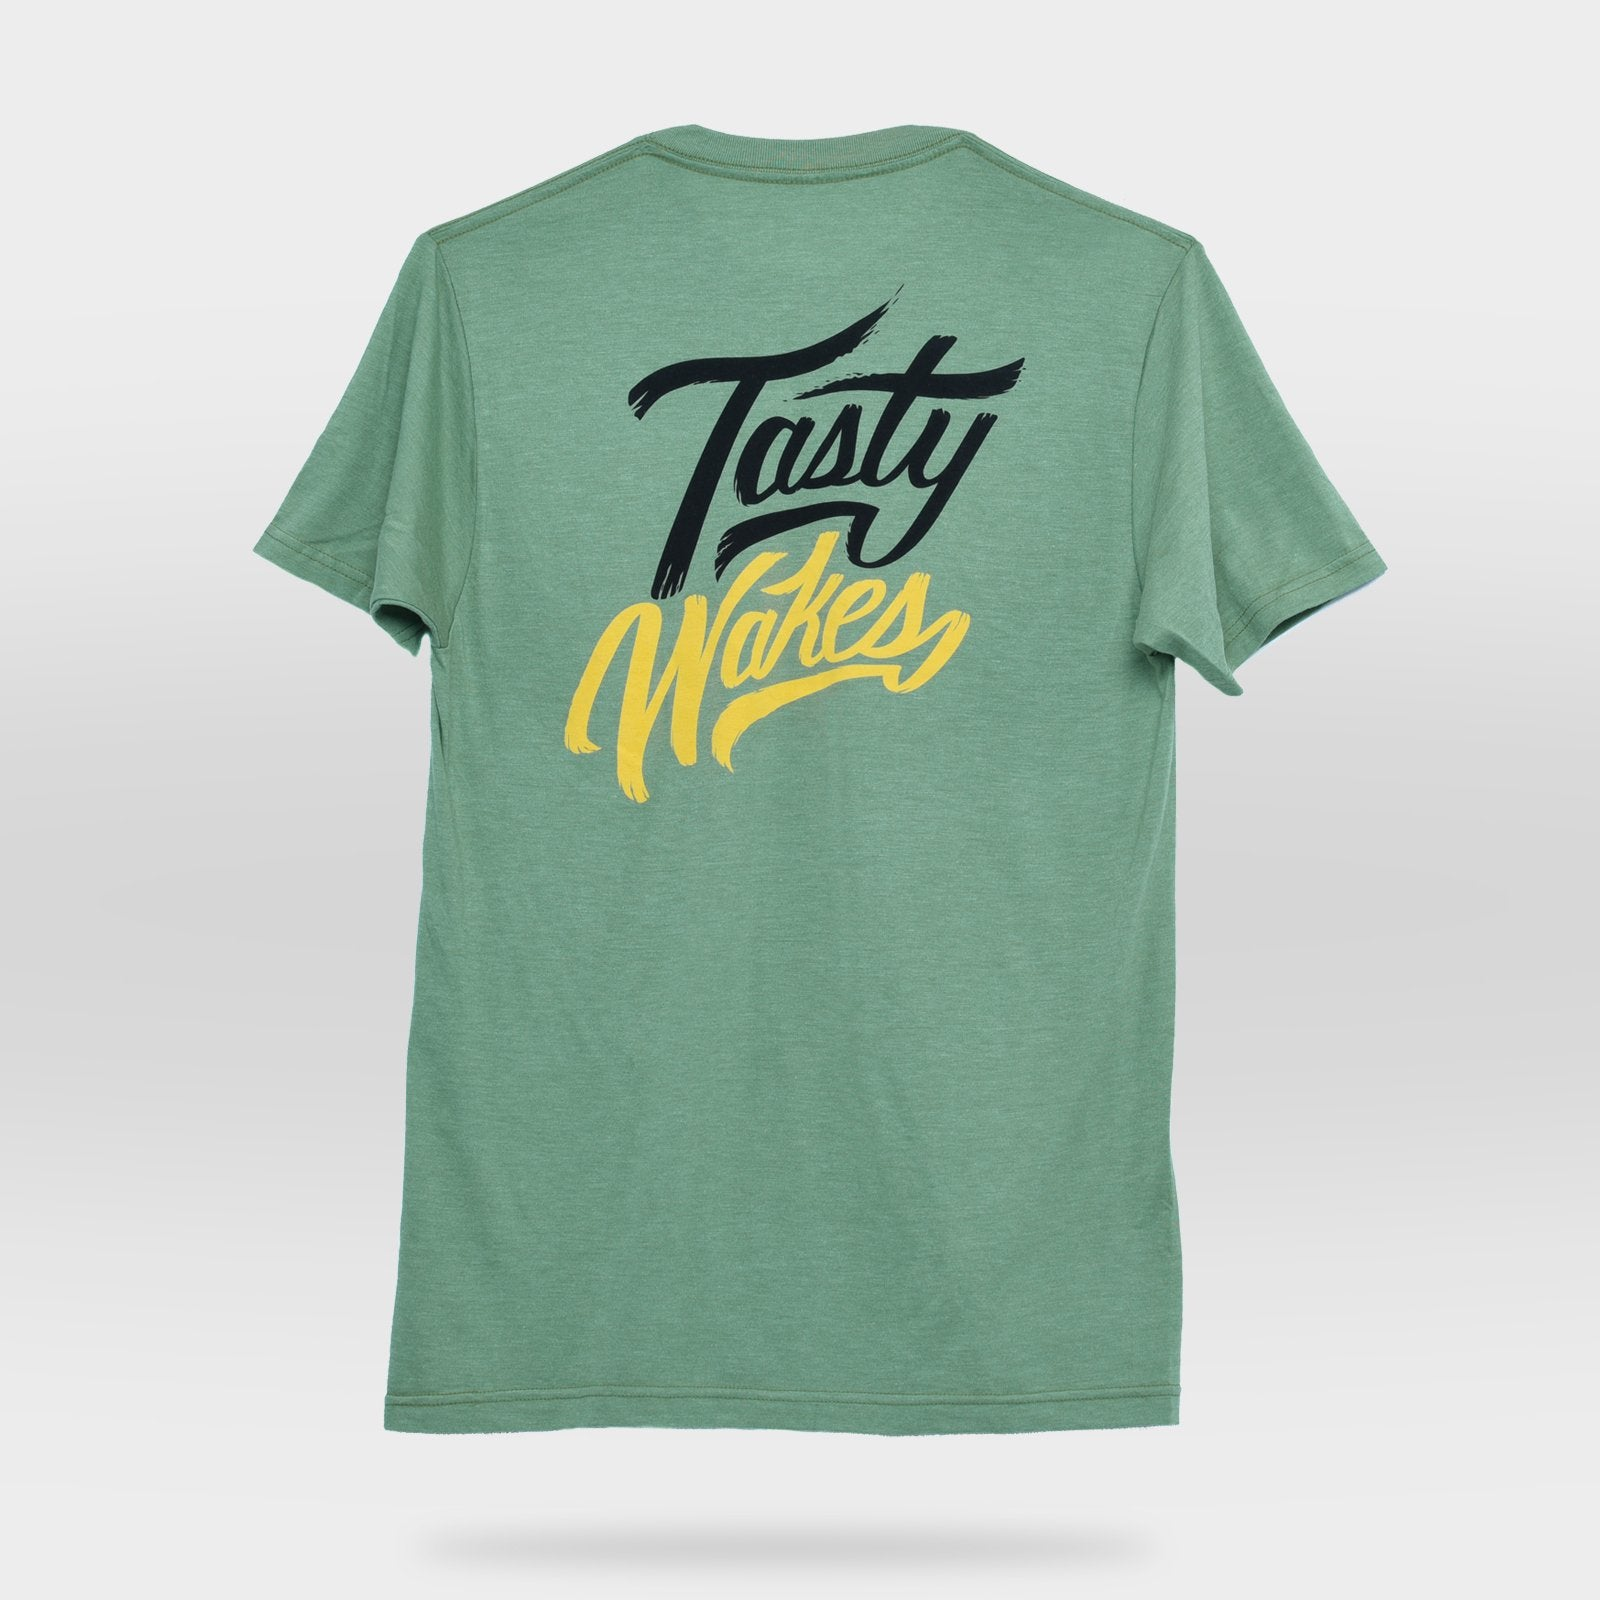 Back view of Green Tasty Wakes T-shirt on gray background